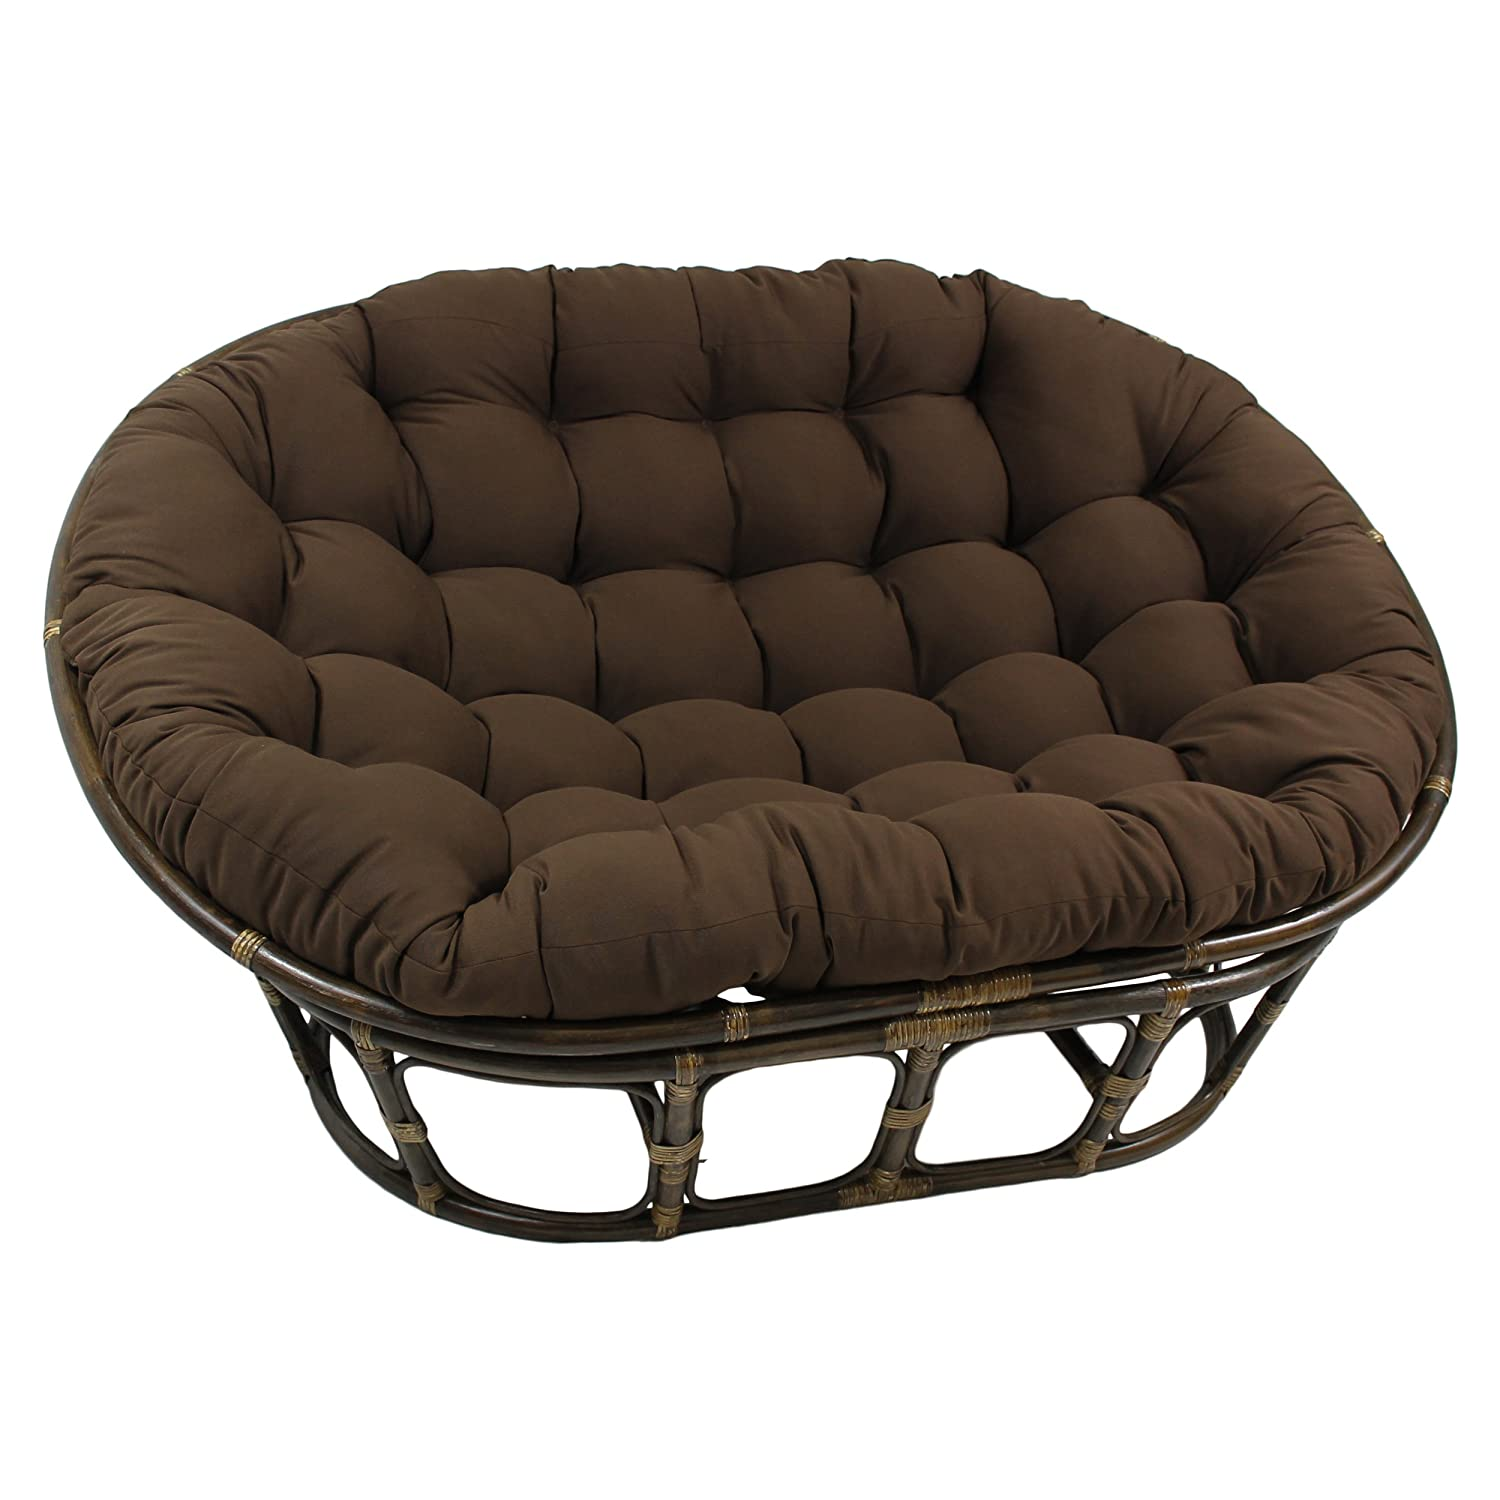 double cushion for trends chair ideas nsyd papasan needles blazing uncategorized and amazing